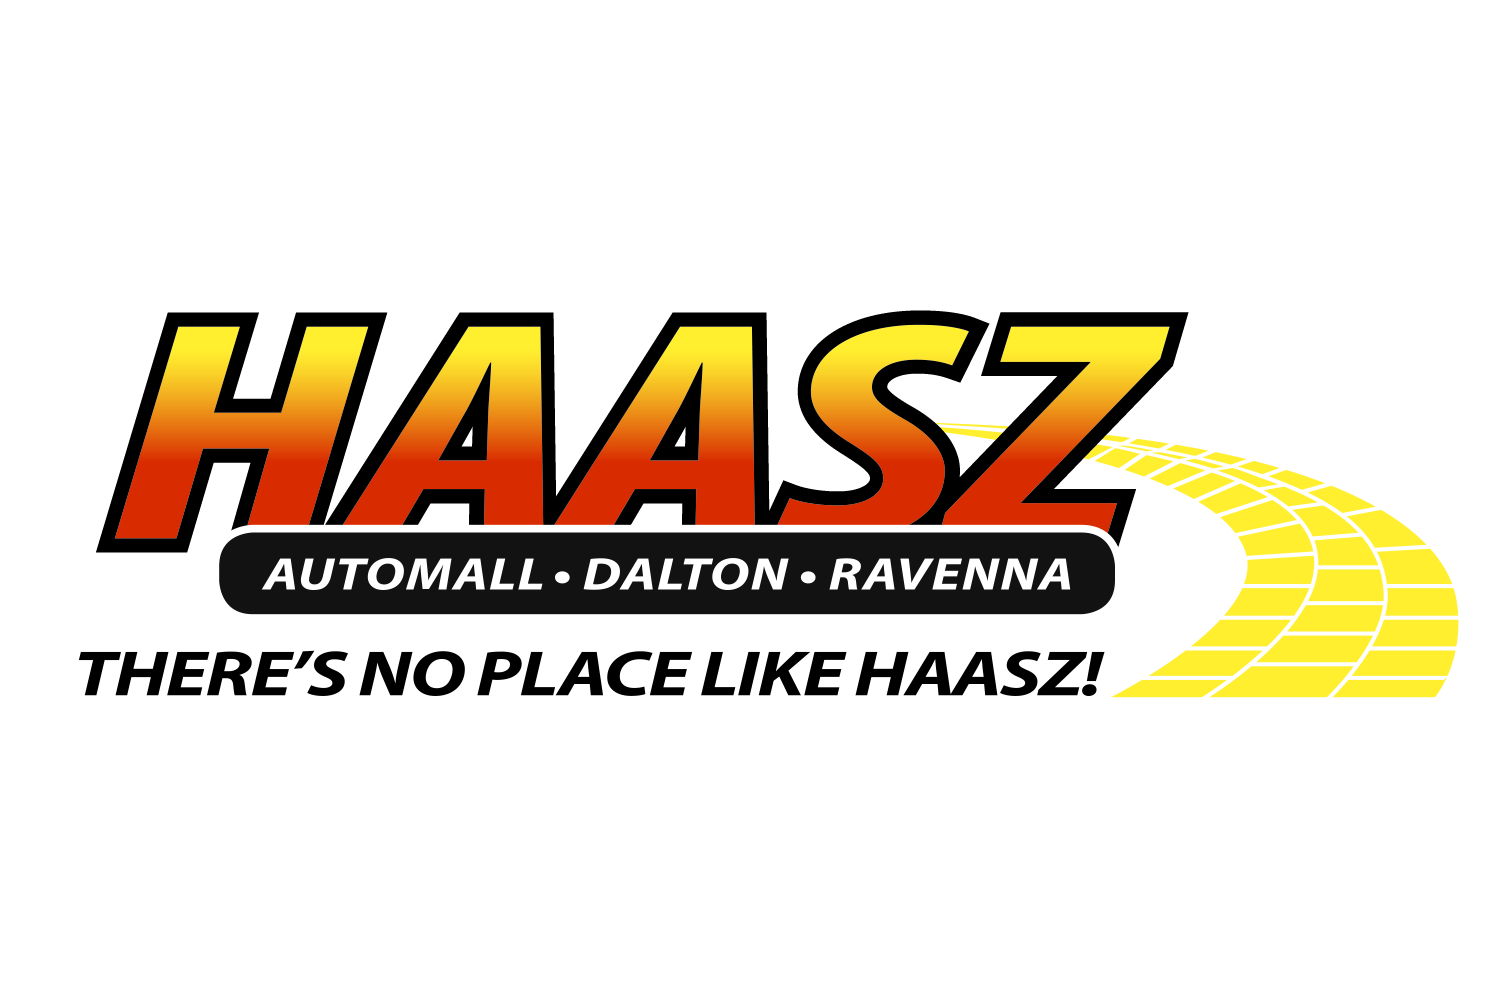 Haasz Automall Of Dalton >> Dalton Chrysler Dodge Jeep Ram Dealer In Dalton Oh Canton